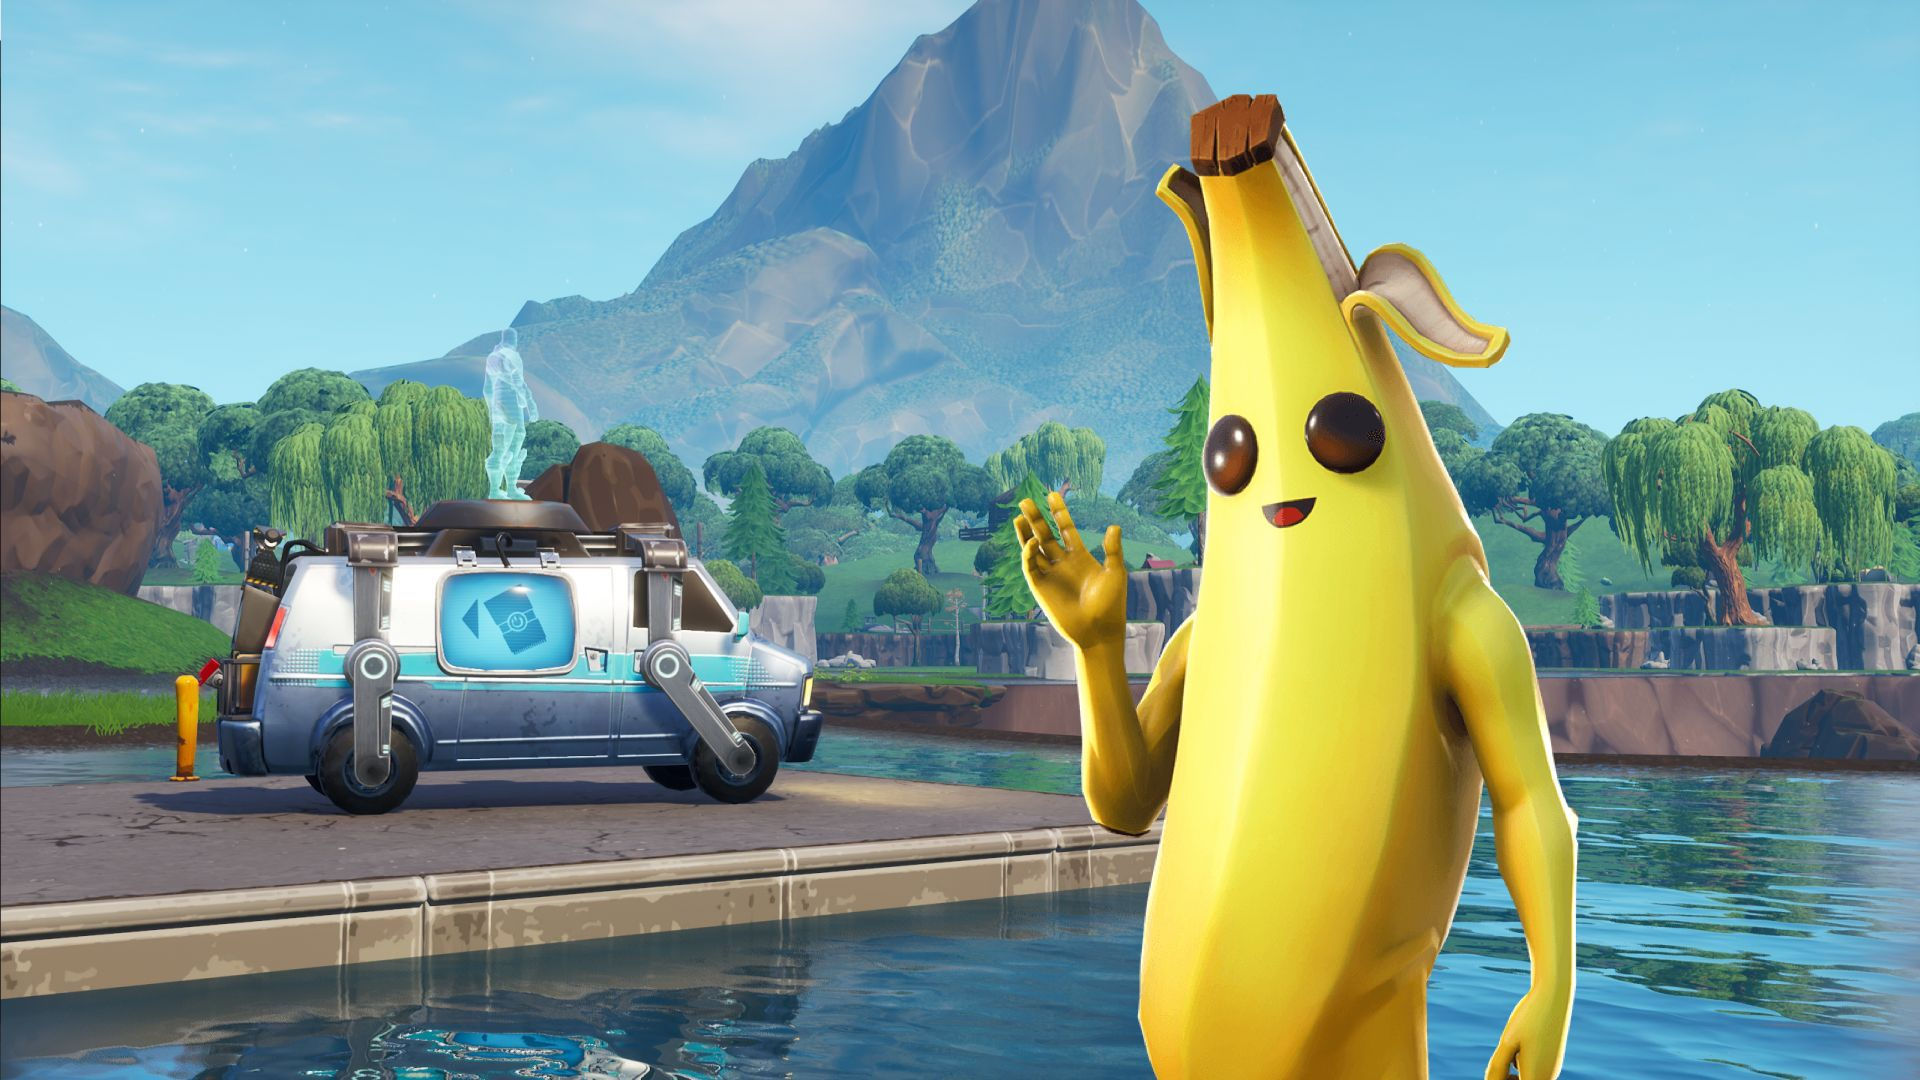 Banana Skin Fortnite Wallpaper Hd